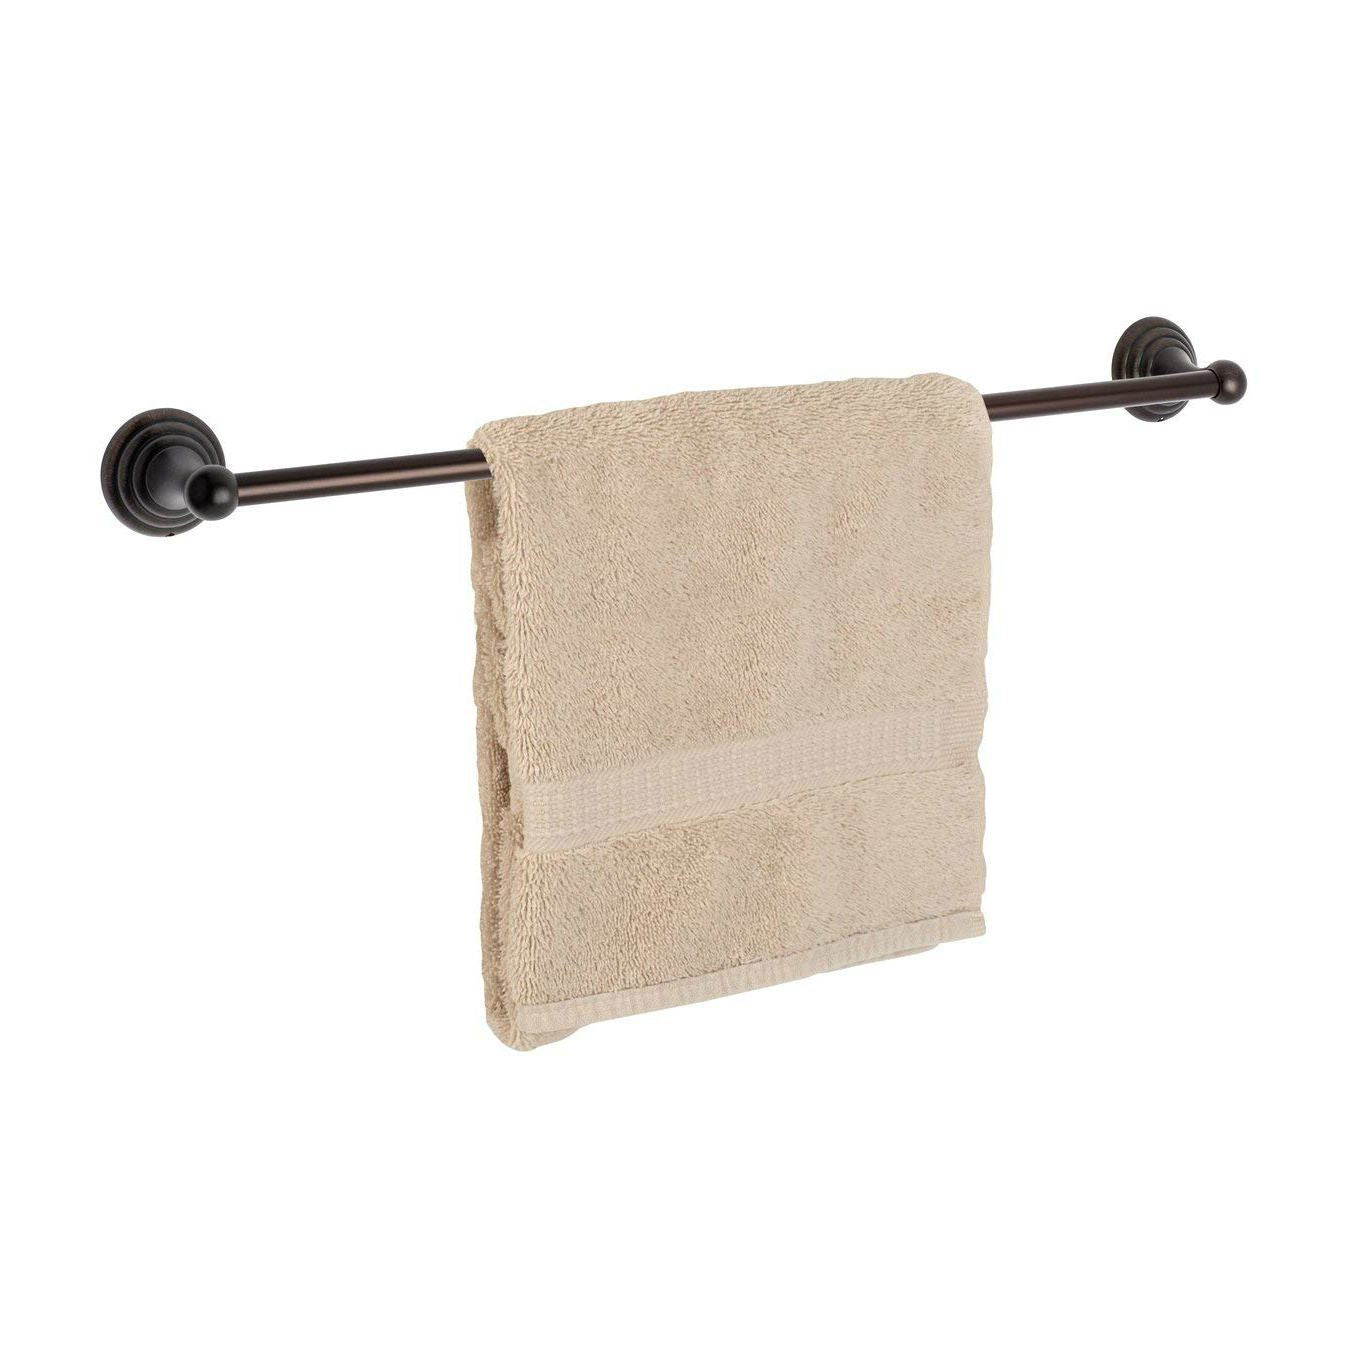 "Dynasty Hardware Bel Air 7524-ORB  Oil Rubbed Bronze 24"" Single Towel Bar"